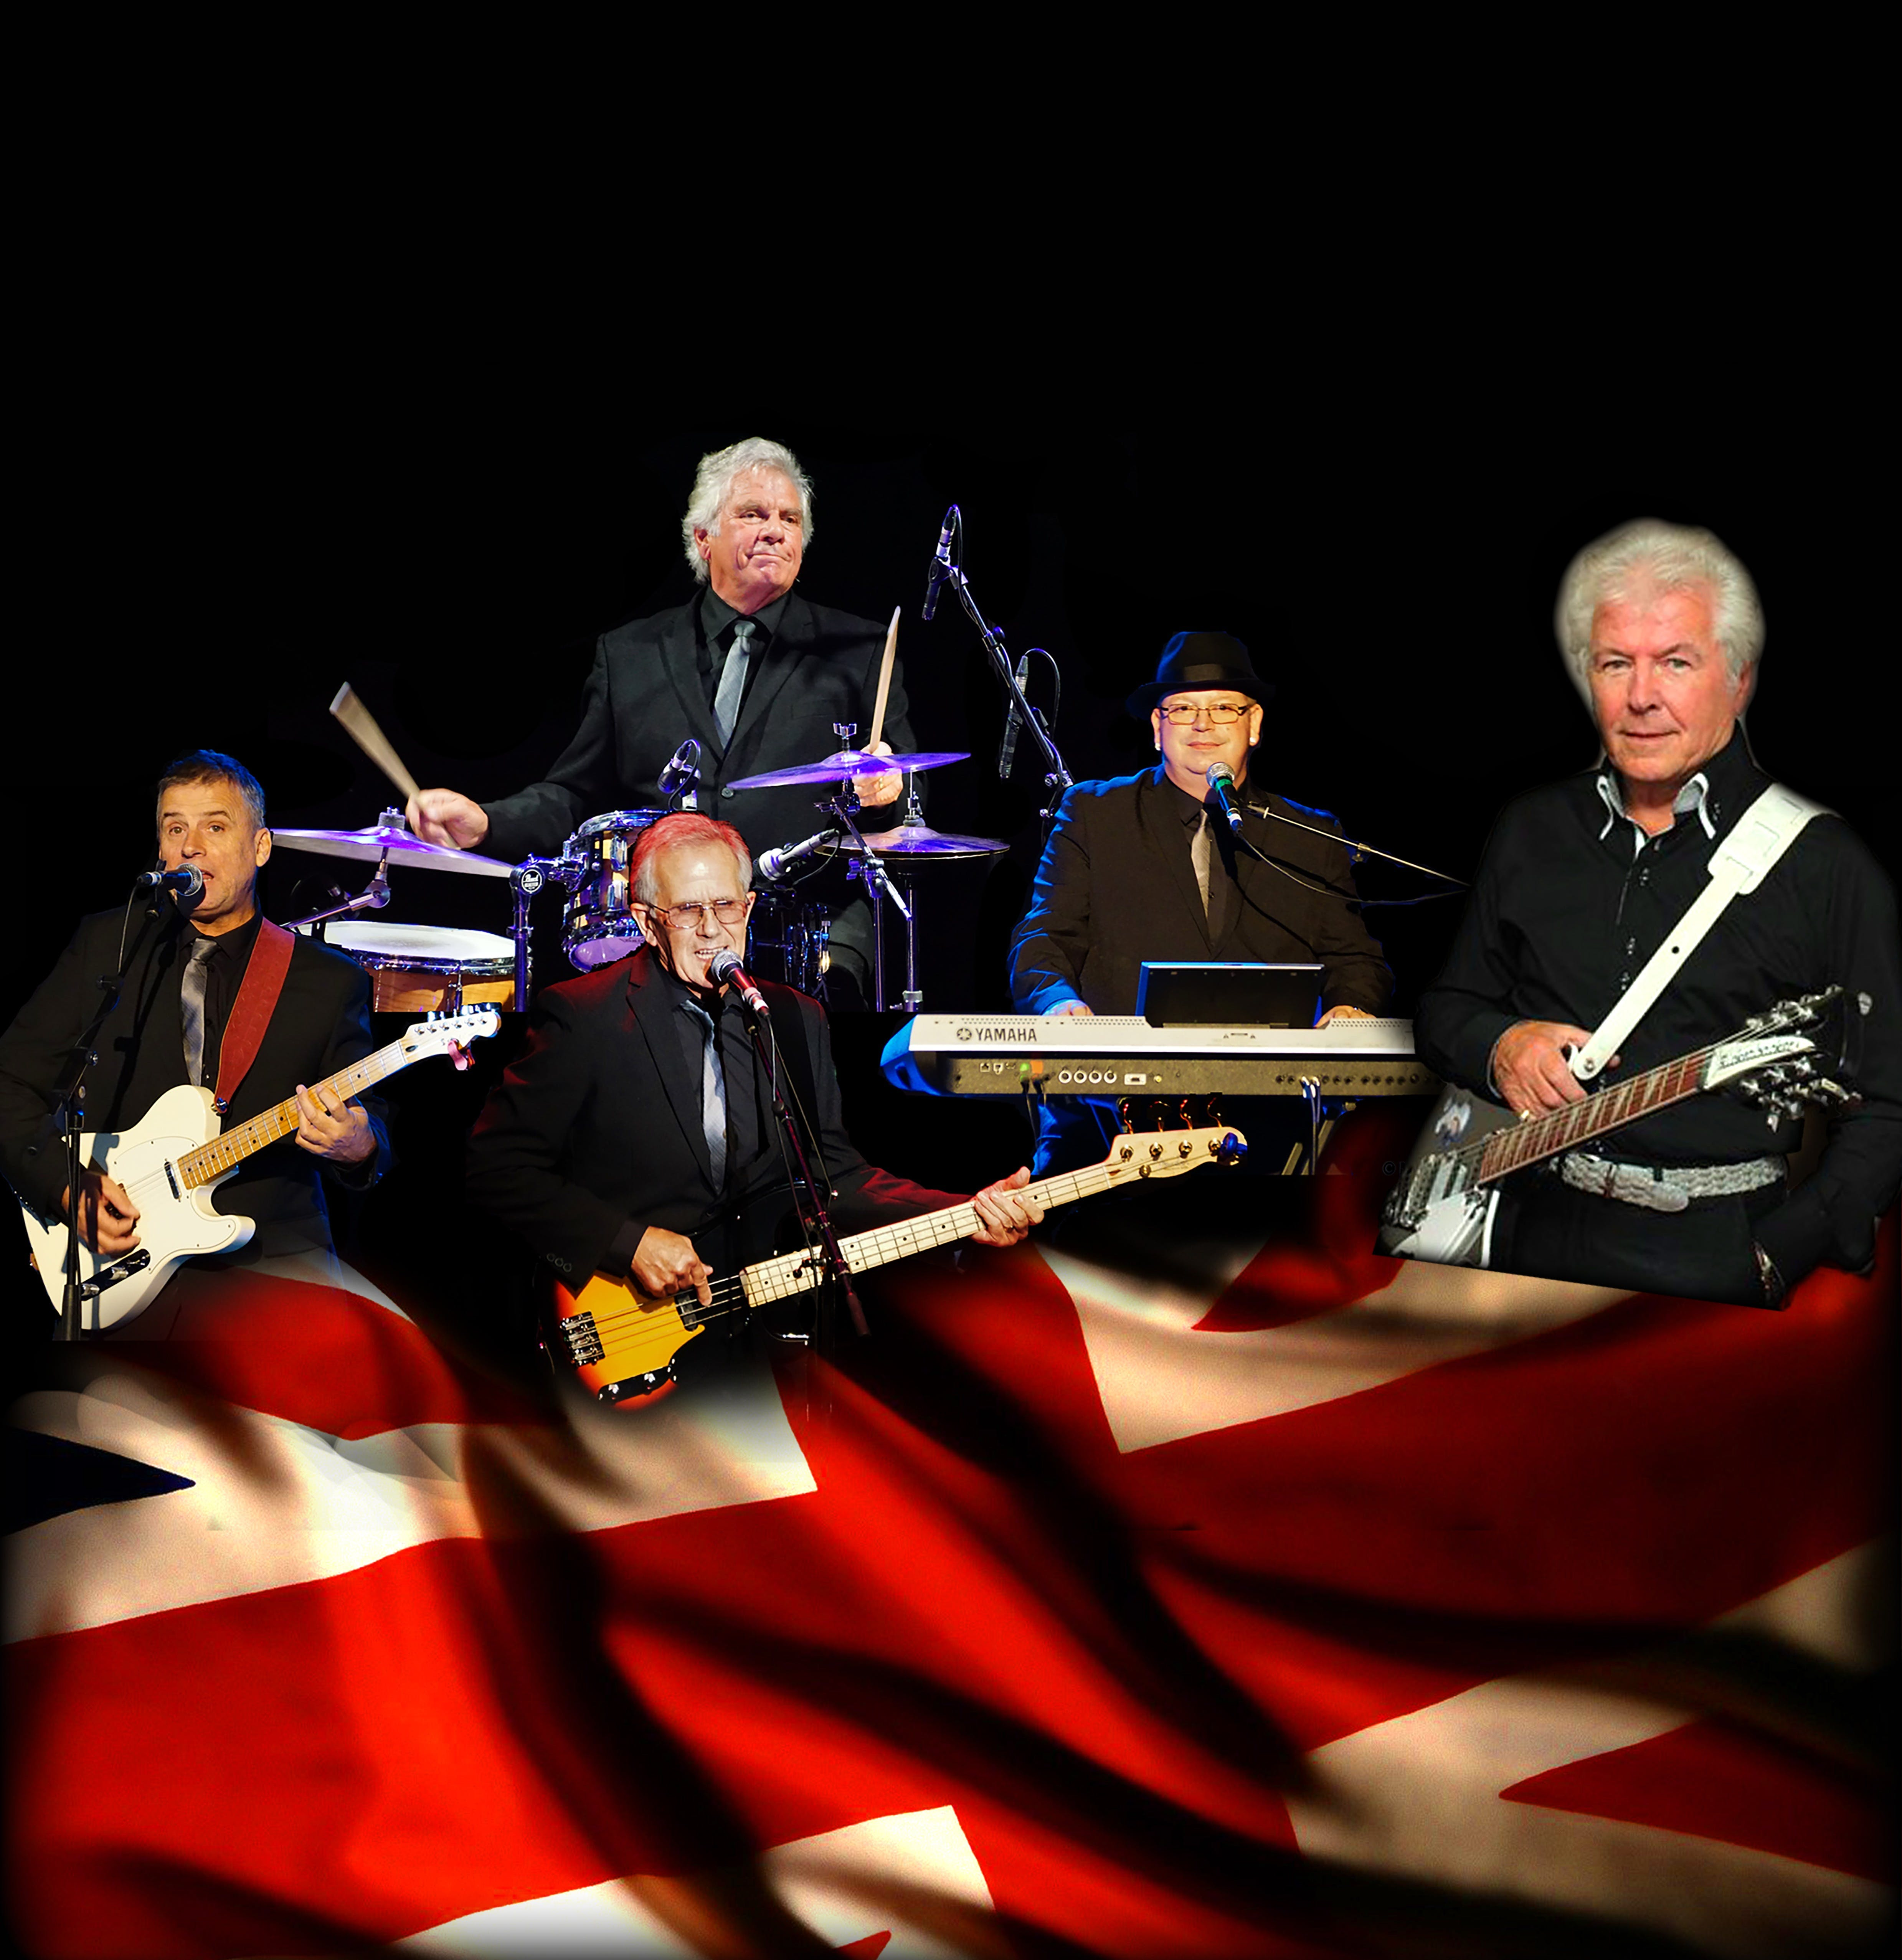 Herman's Hermits with Special Guest Mike Pender - The Six O'Clock Hop - Broome Tourism